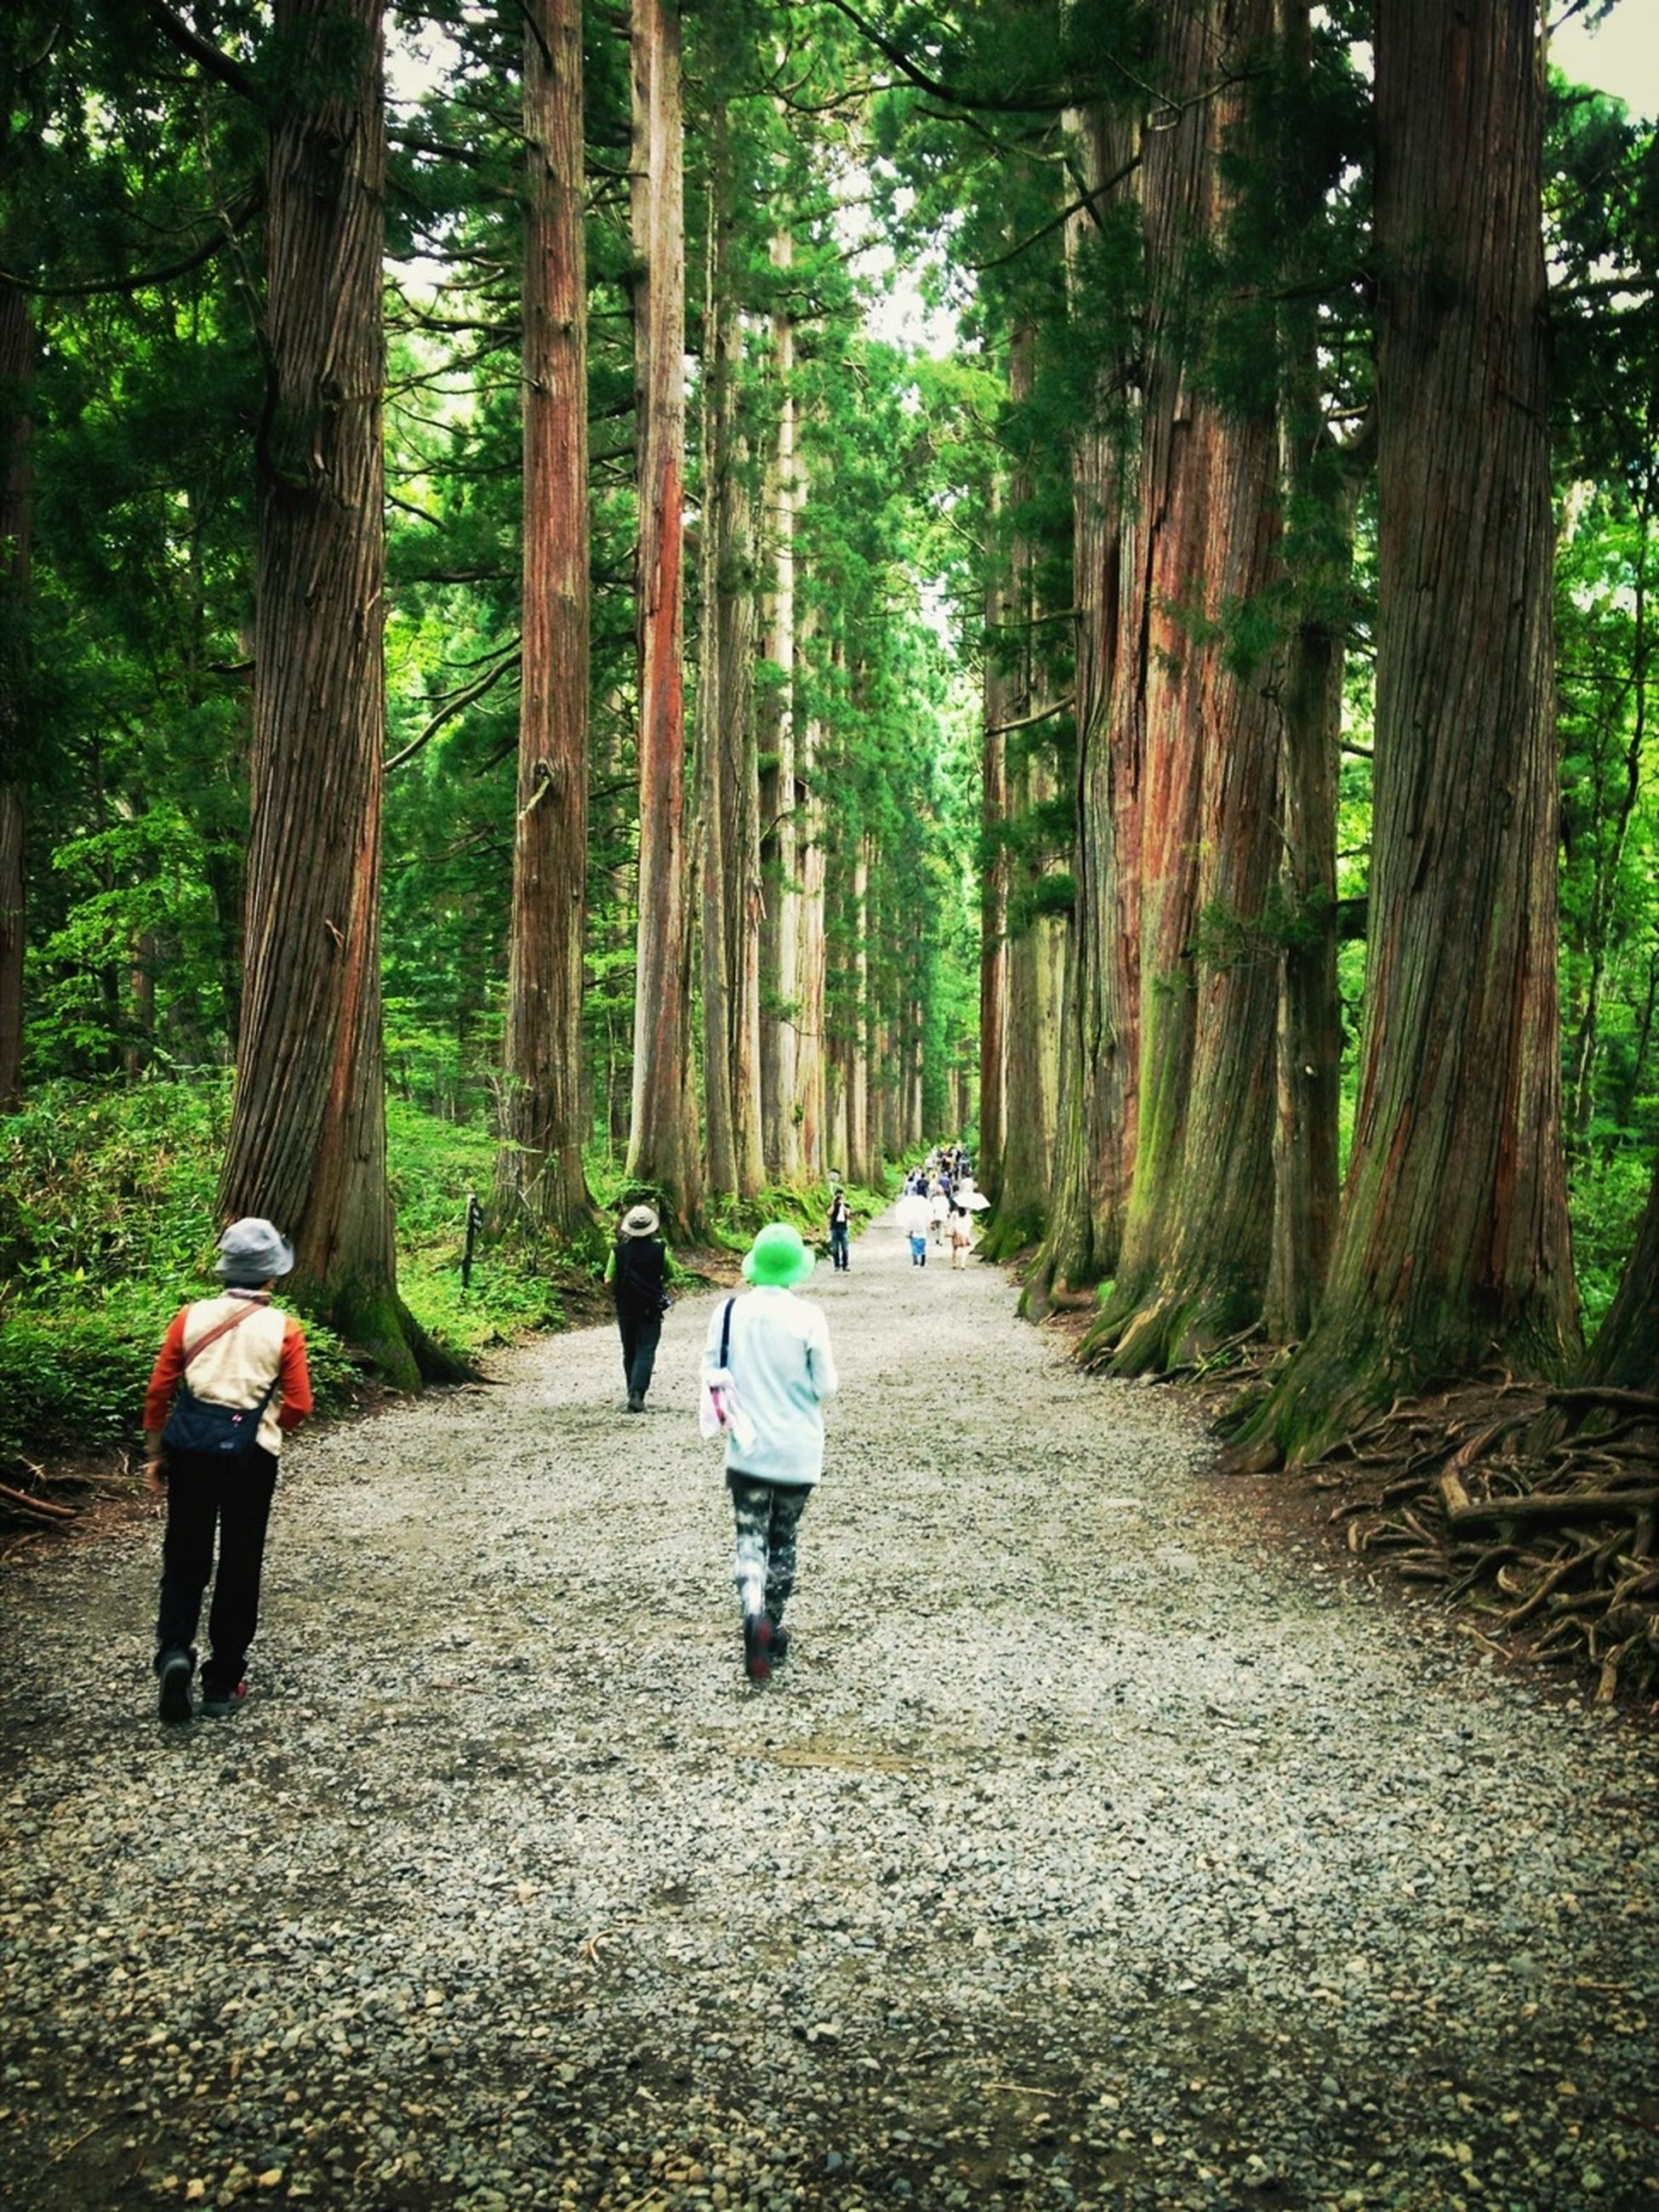 tree, rear view, men, the way forward, lifestyles, leisure activity, full length, walking, person, transportation, forest, tree trunk, togetherness, growth, road, casual clothing, diminishing perspective, footpath